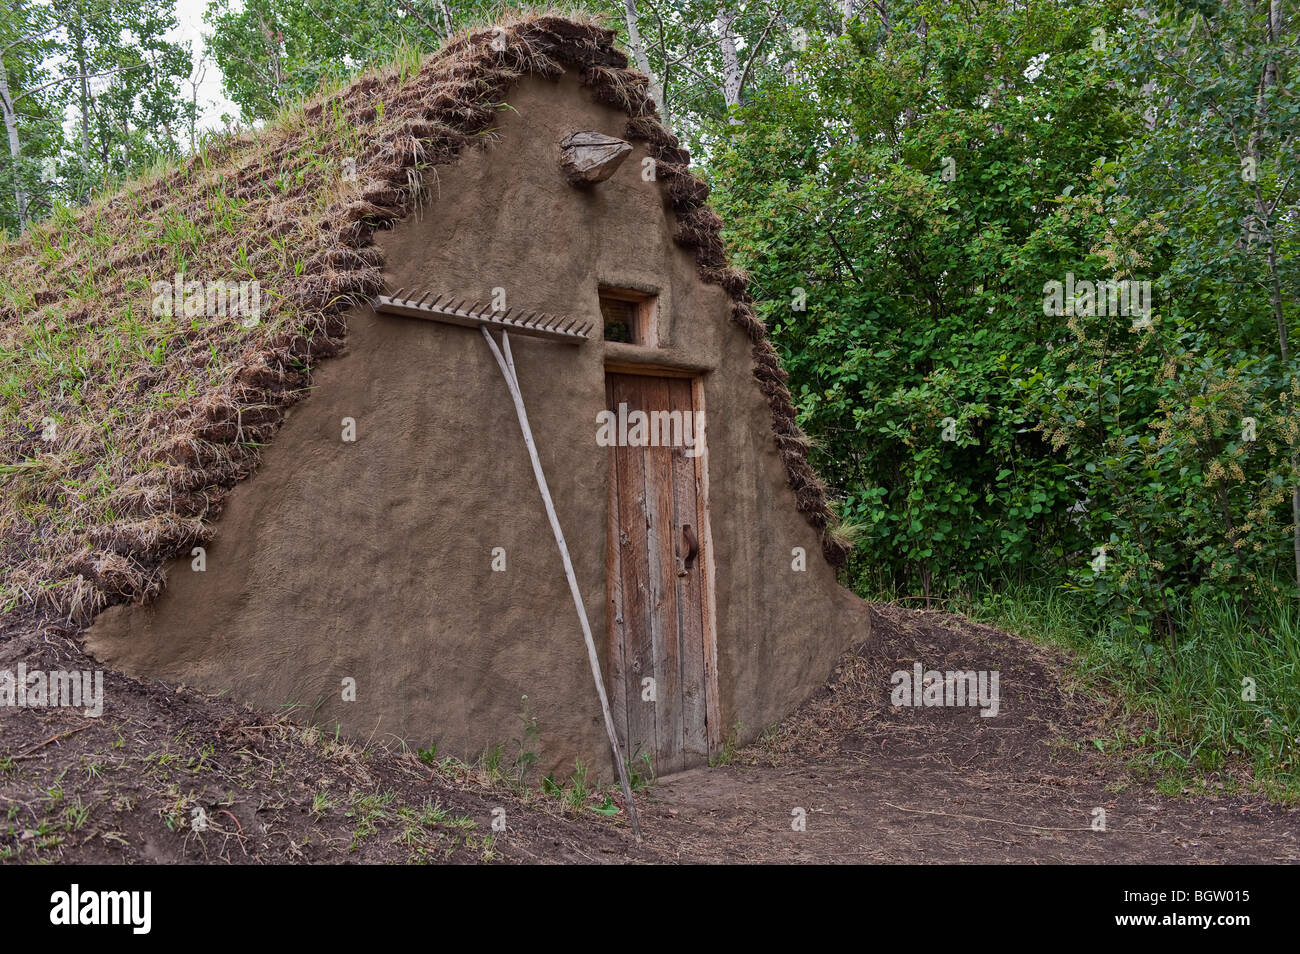 Primitive dwelling with sod roof - Stock Image